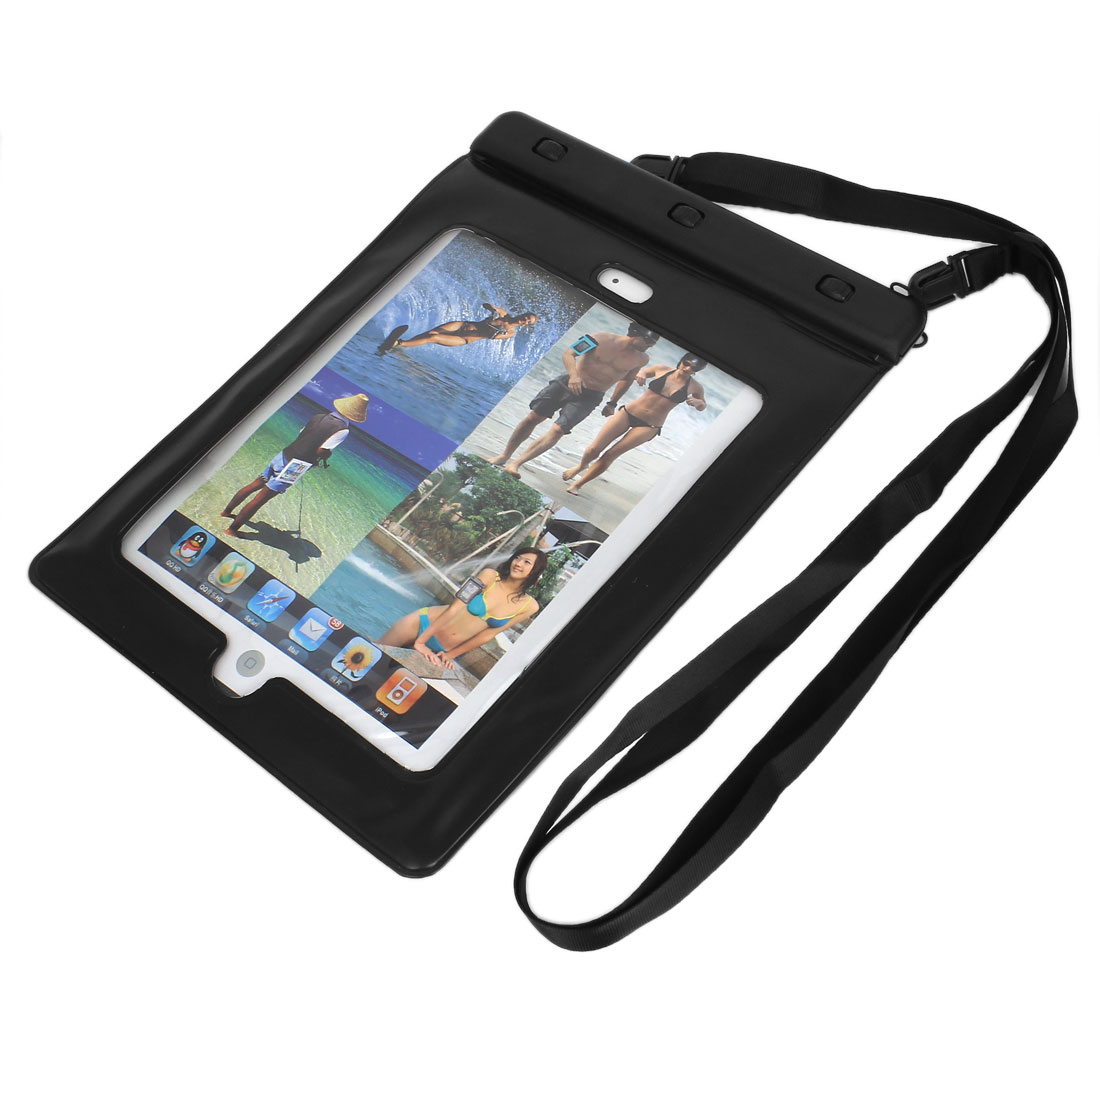 PVC Tablet Waterproof Dry Bag Skin Cover Black for iPad Mini 1/2